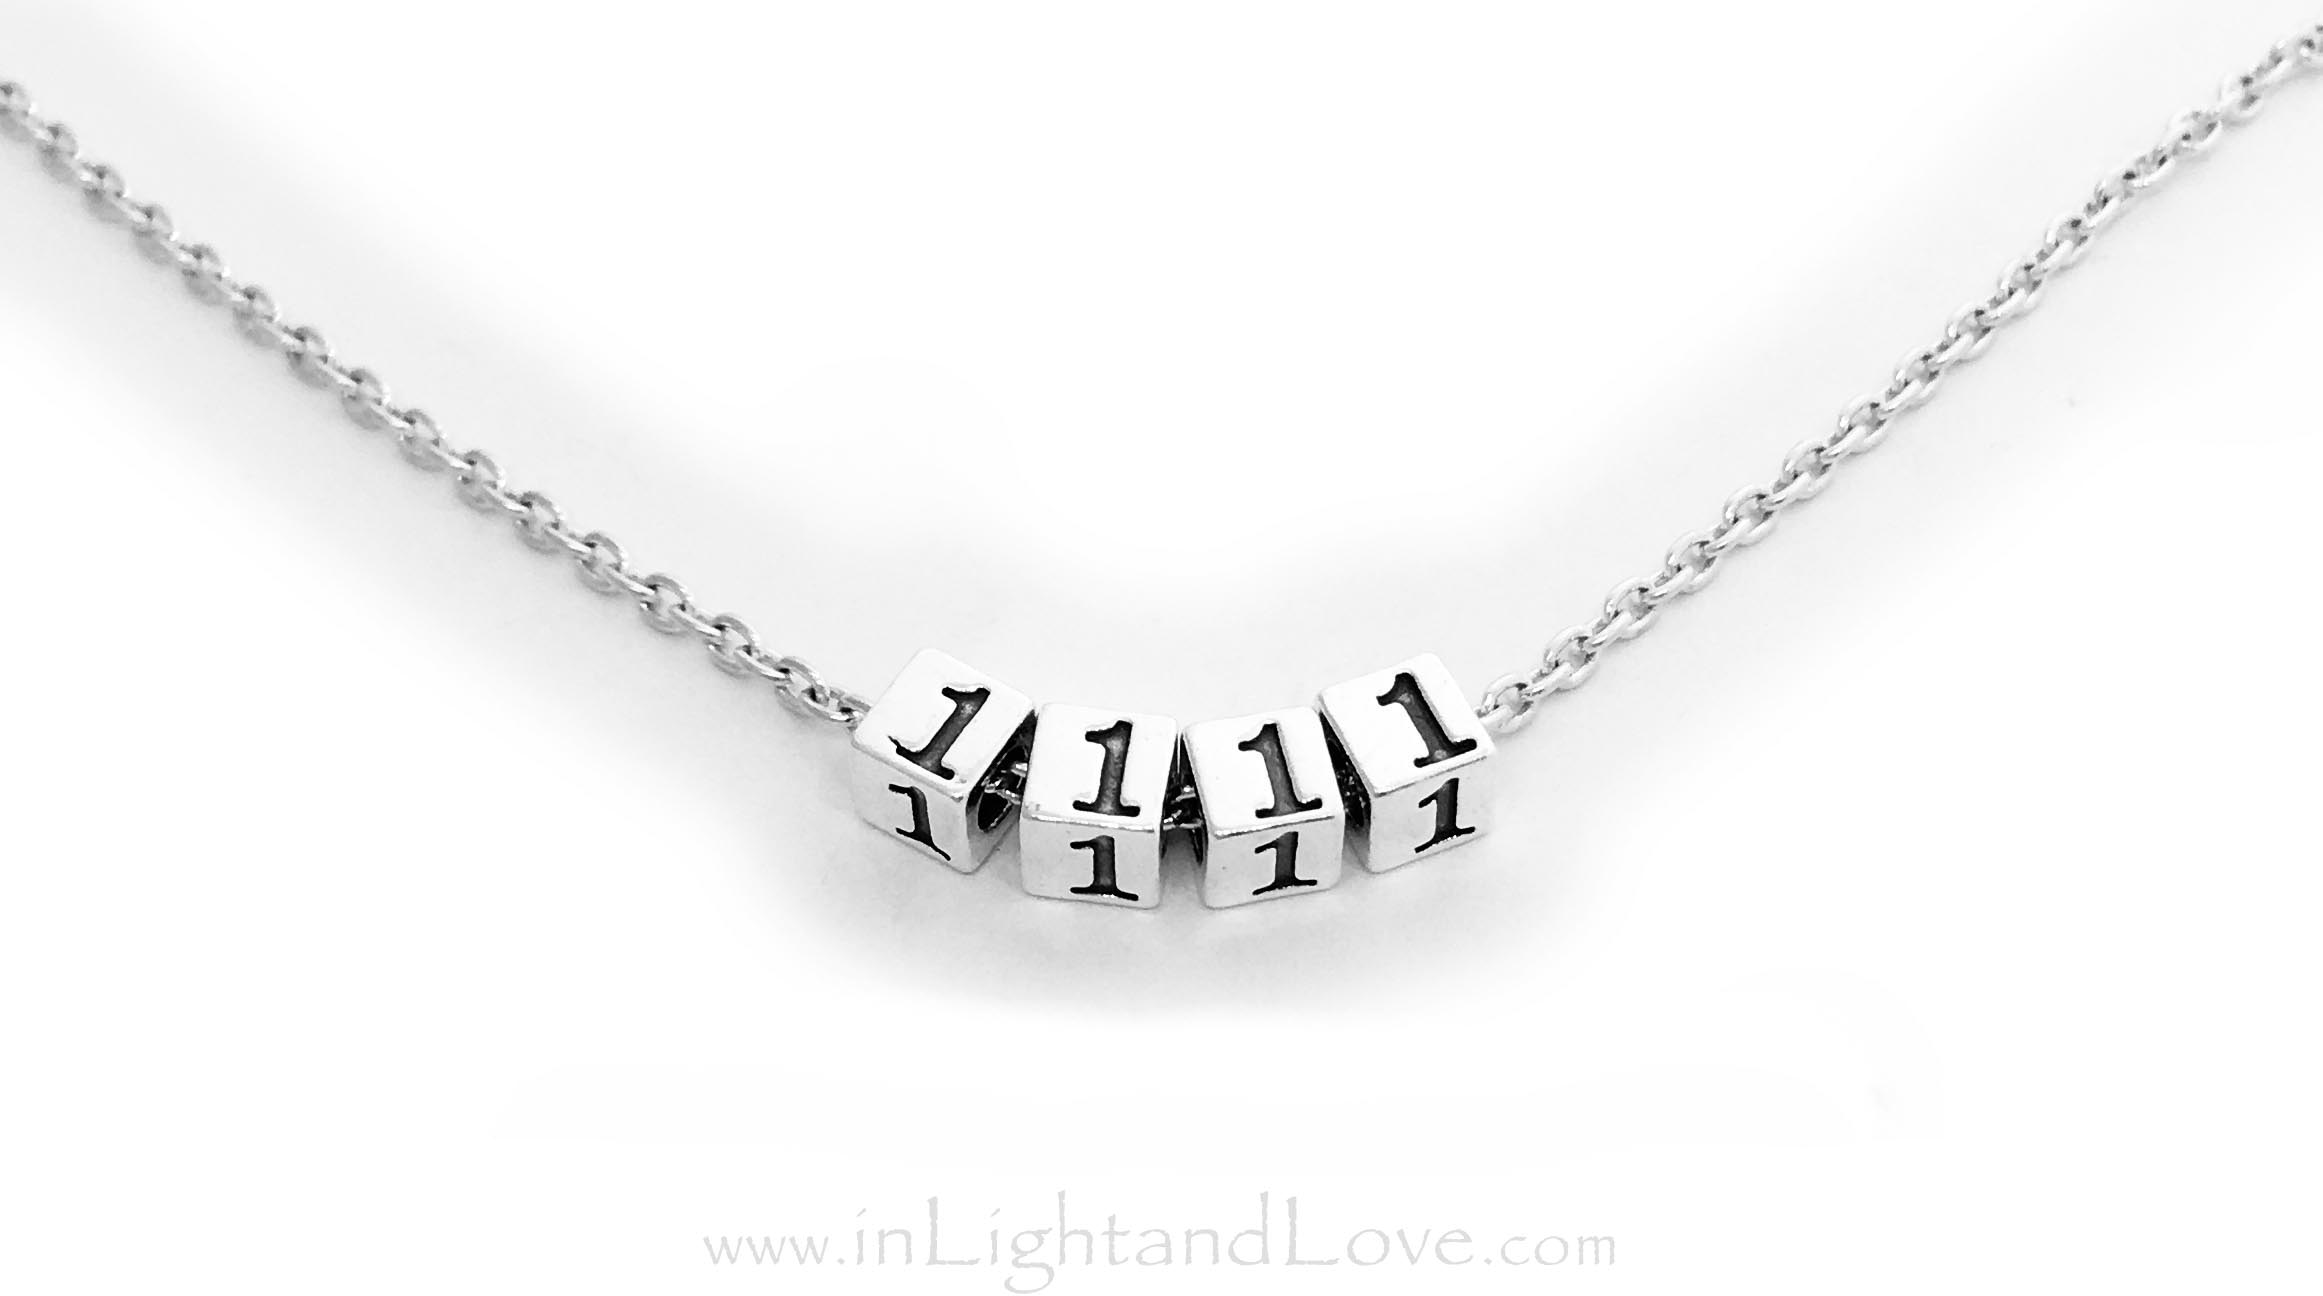 1111 Meaning or 11:11 Necklace